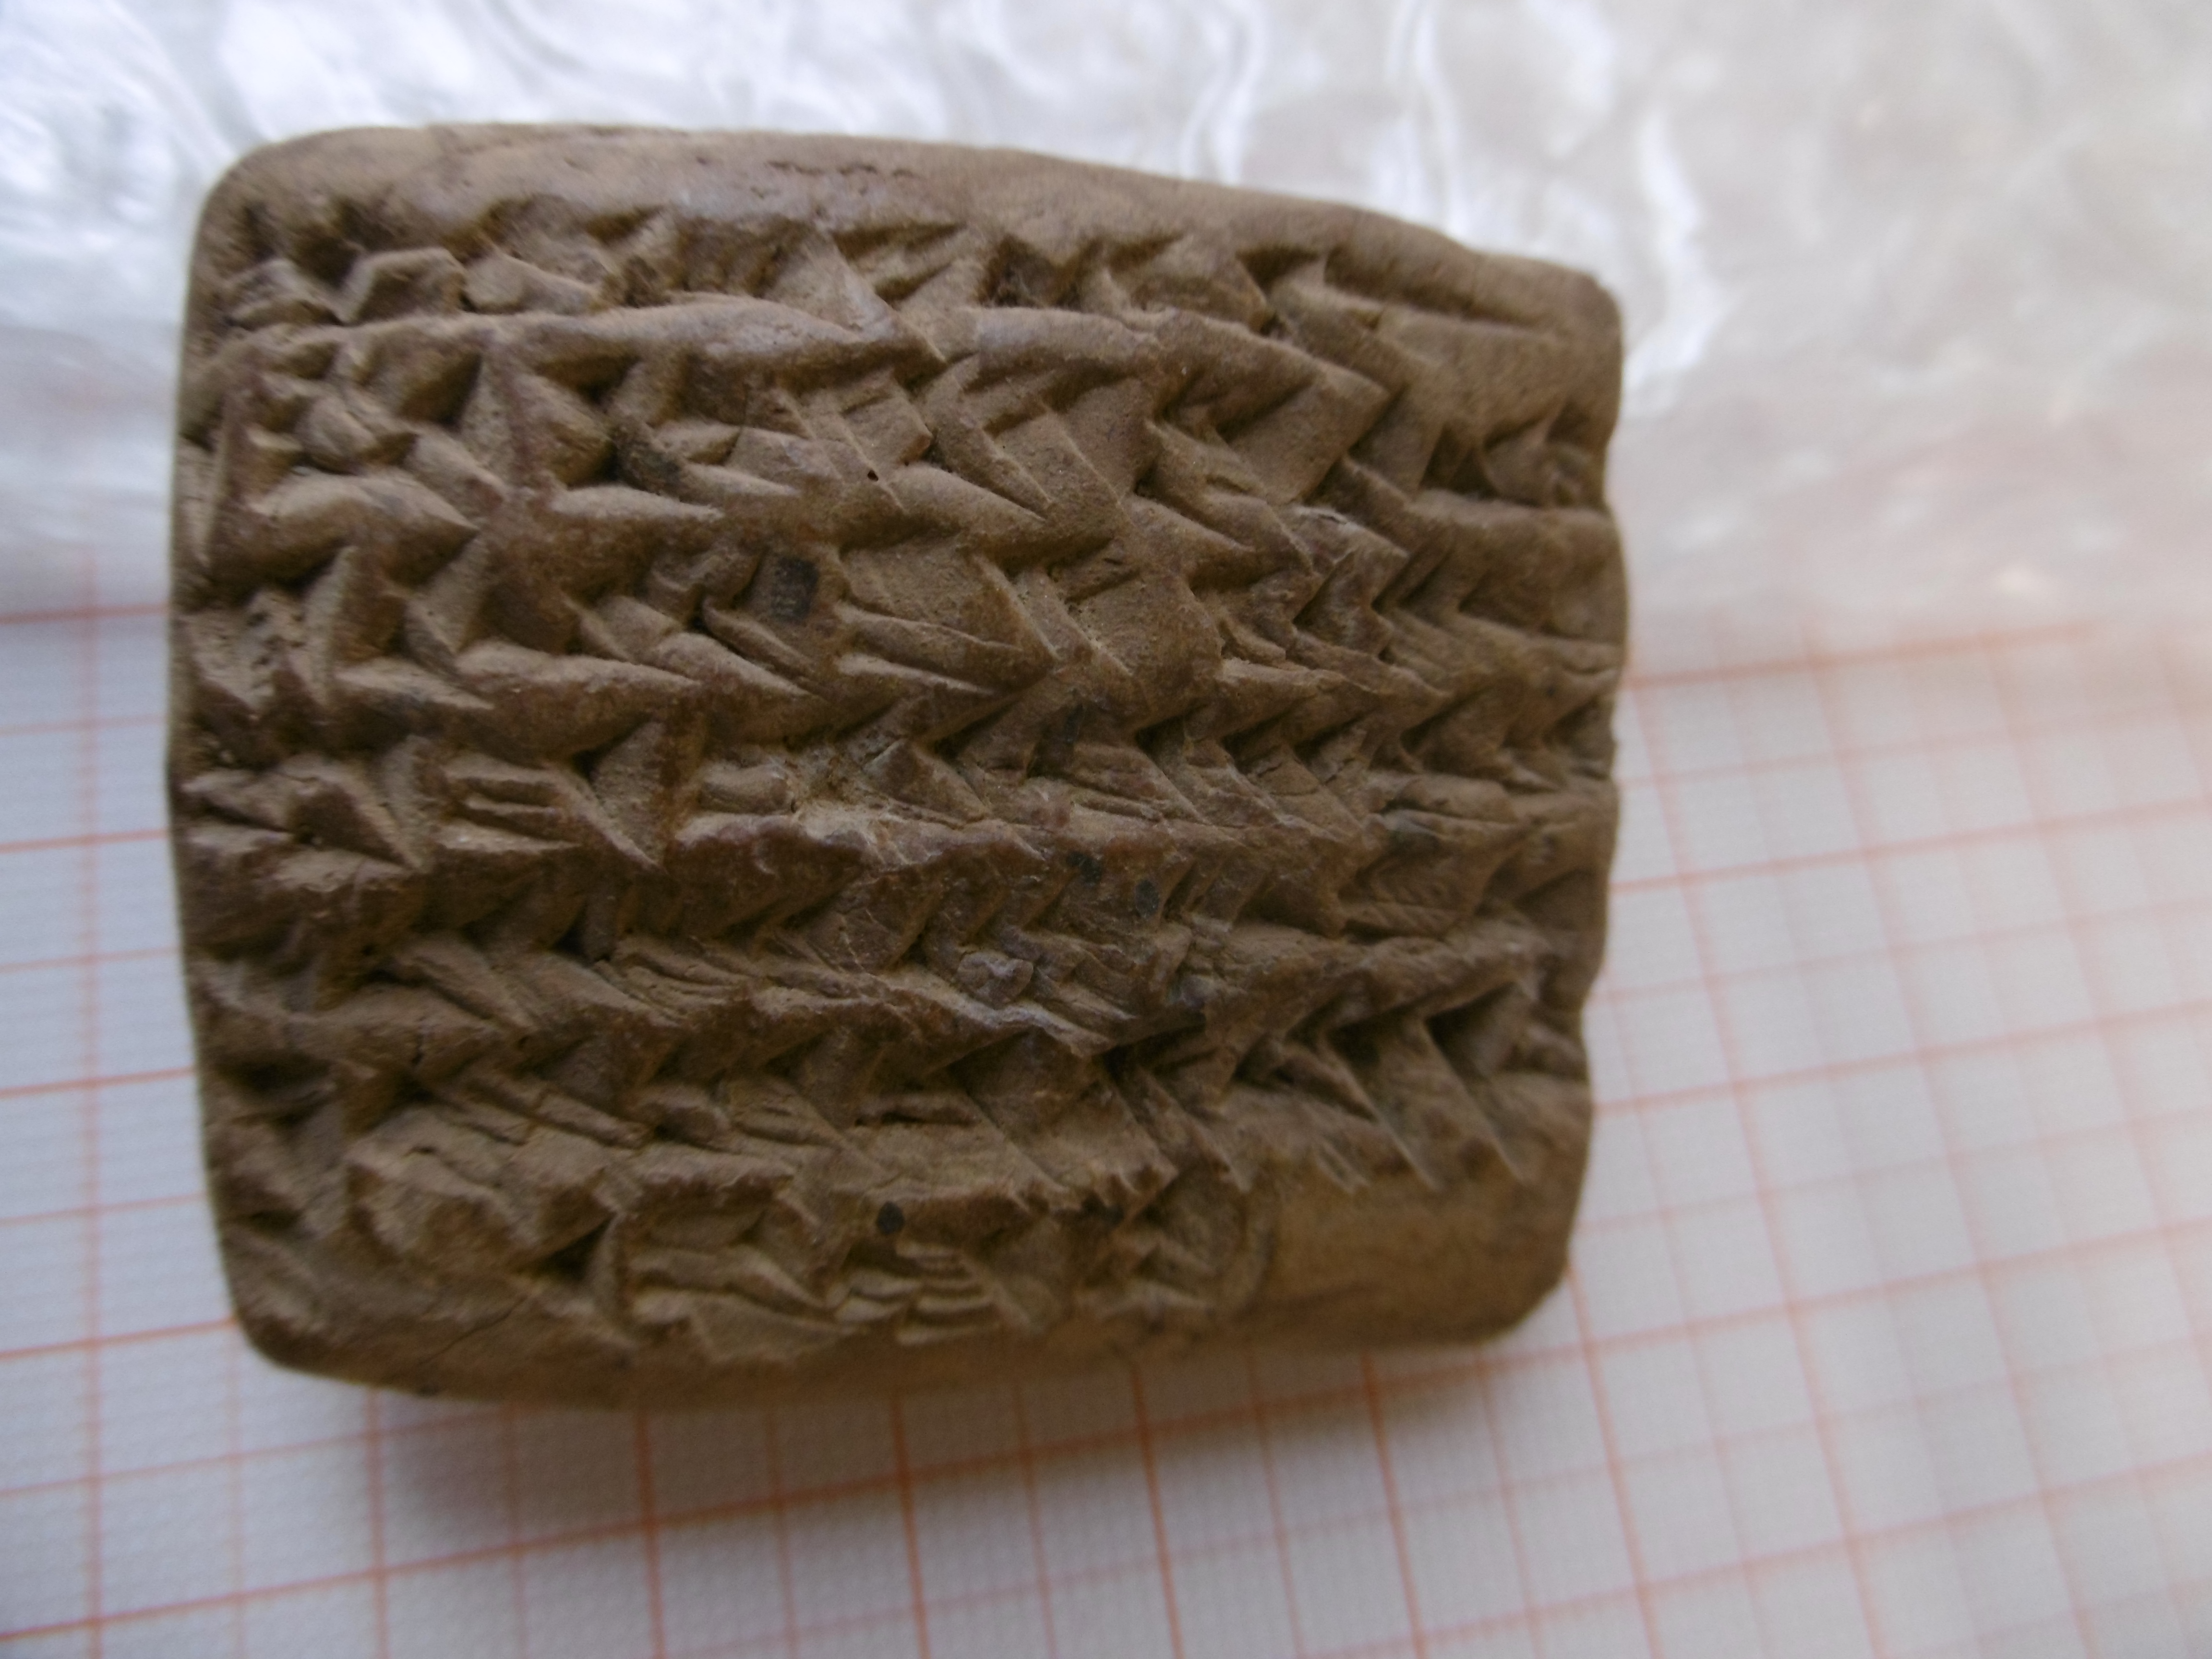 A photograph of a cuneiform tablet against the backdrop of graph-paper and bubble-wrap